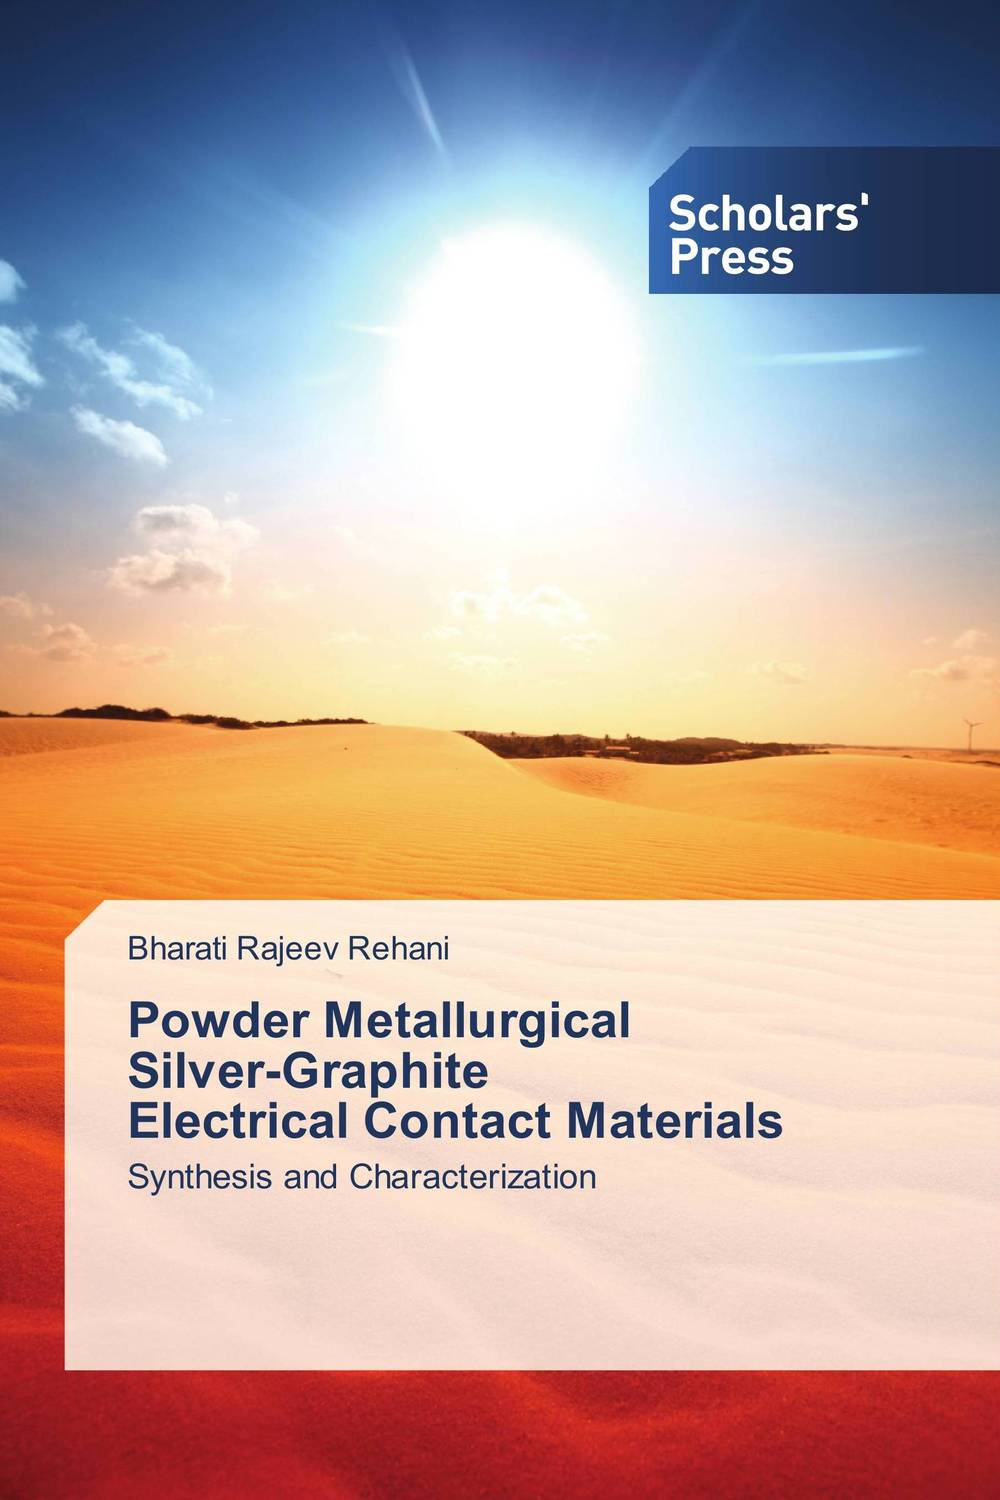 Powder Metallurgical   Silver-Graphite   Electrical Contact Materials materials surface processing by directed energy techniques